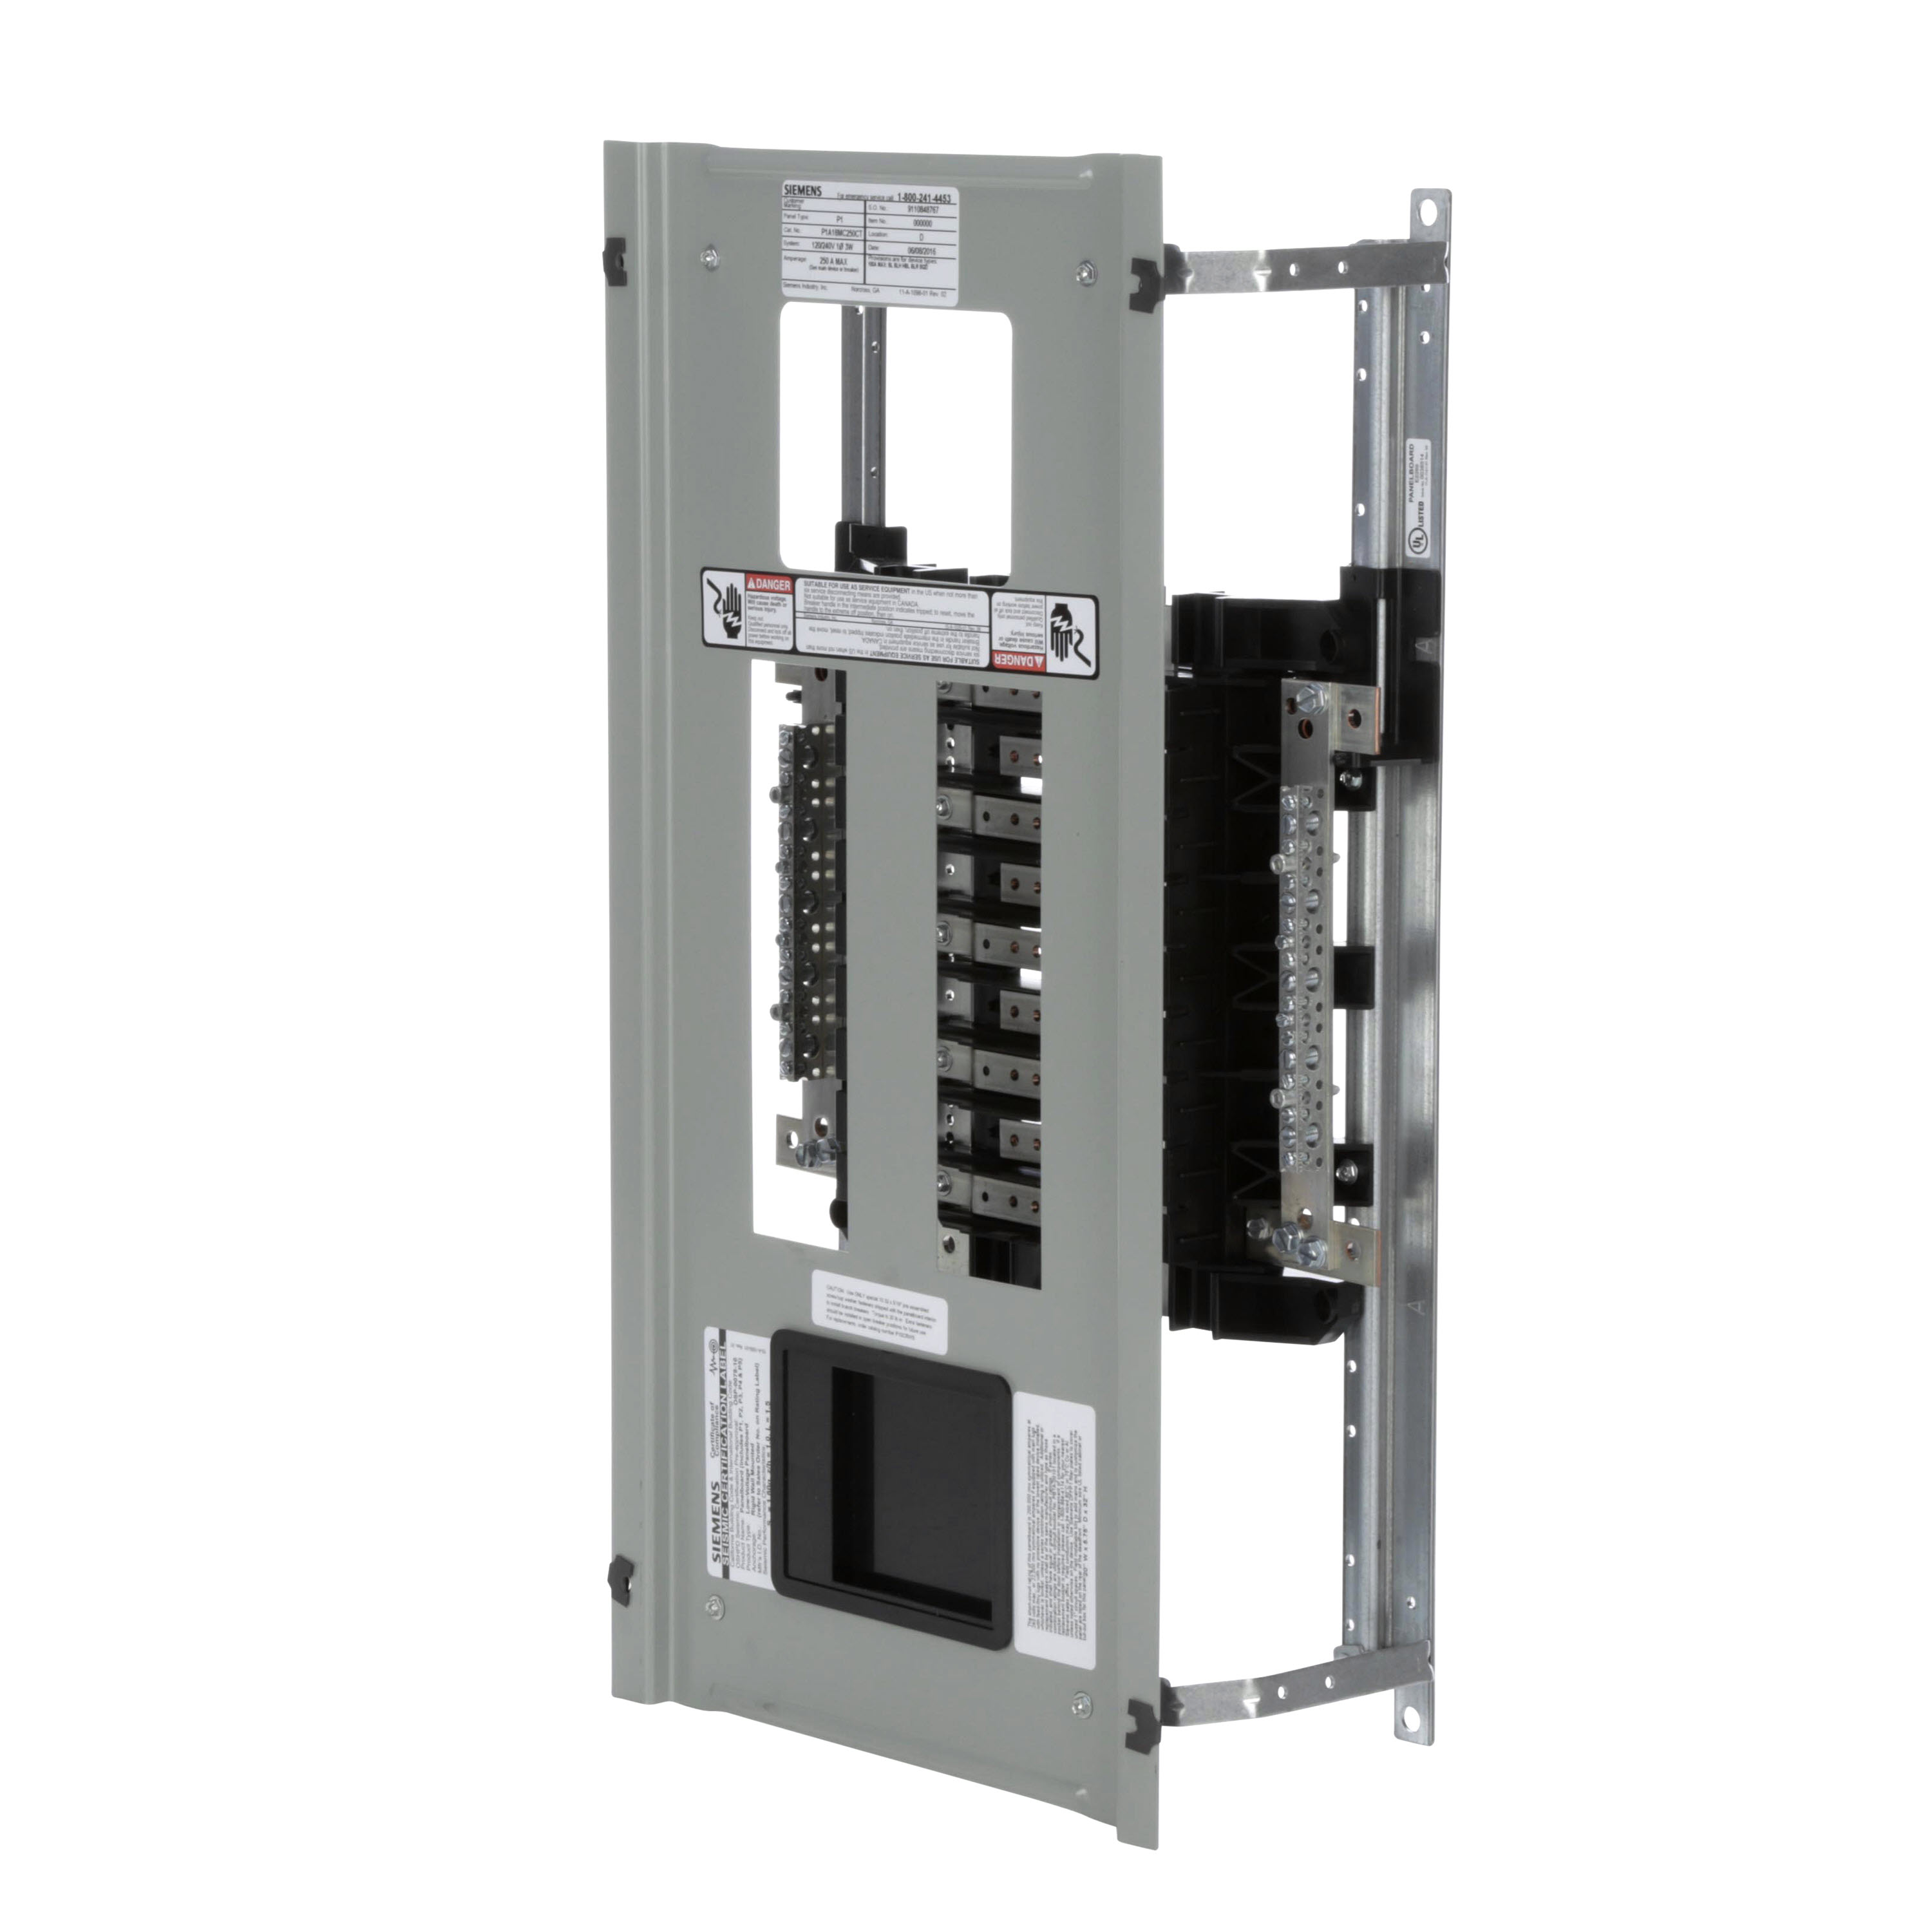 siem p1a18mc250ct redirect to product page